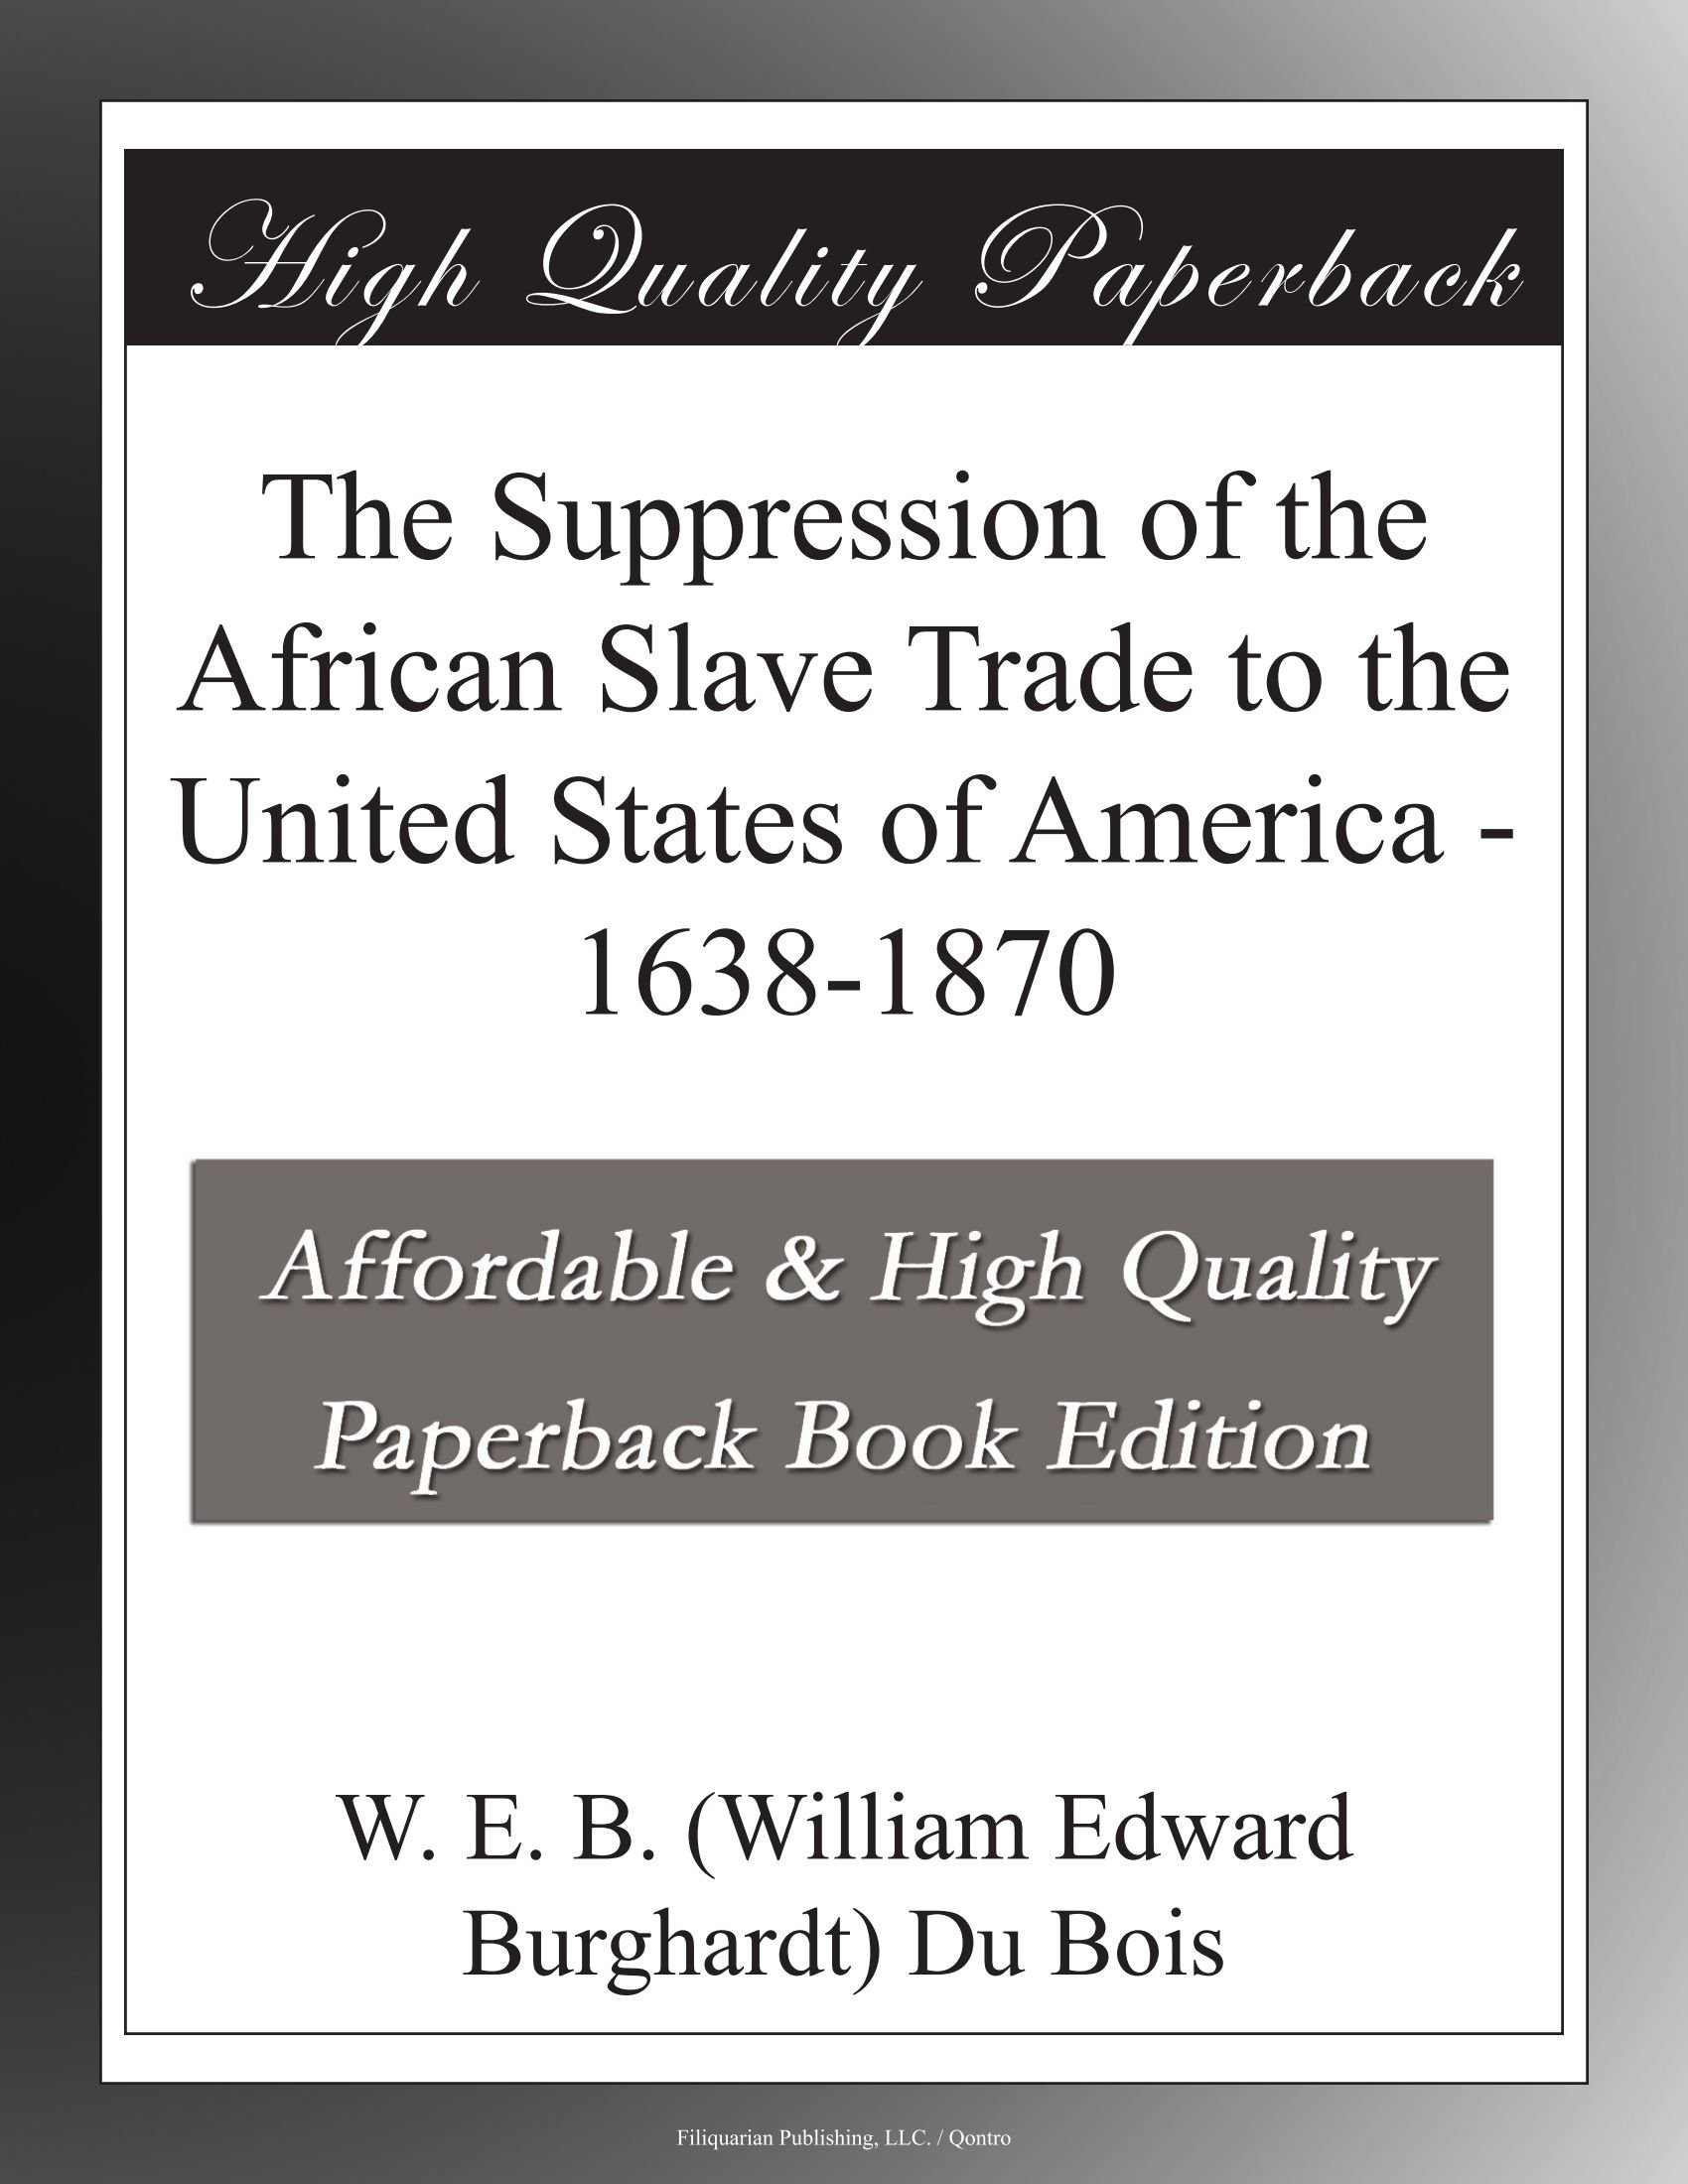 The Suppression of the African Slave Trade to the United States of America - 1638-1870 PDF